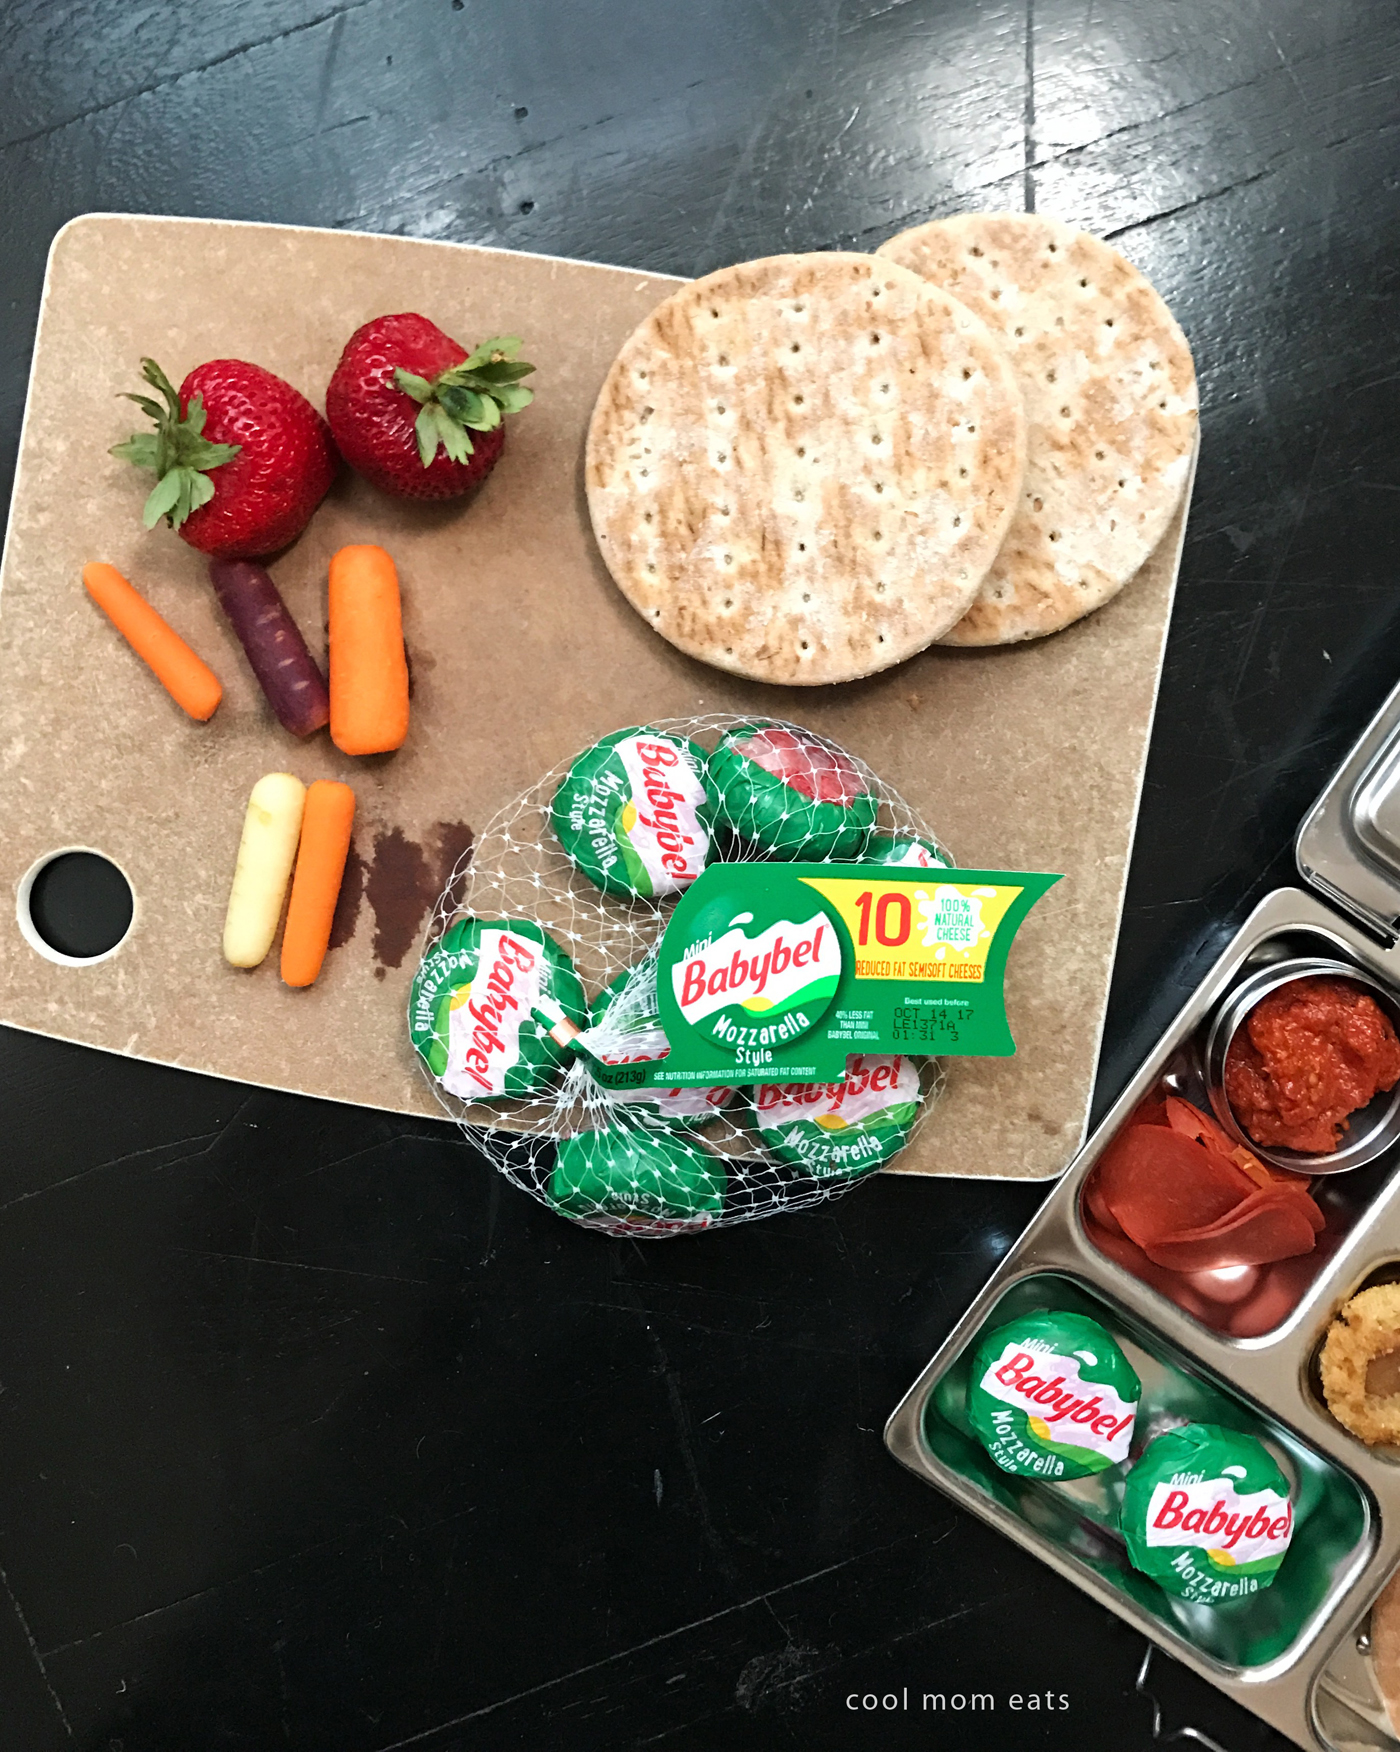 Fun lunchbox ideas to make school lunch more interesting for the kids -- and you too! -- with Mini Babybel | Cool Mom Eats [sponsor]